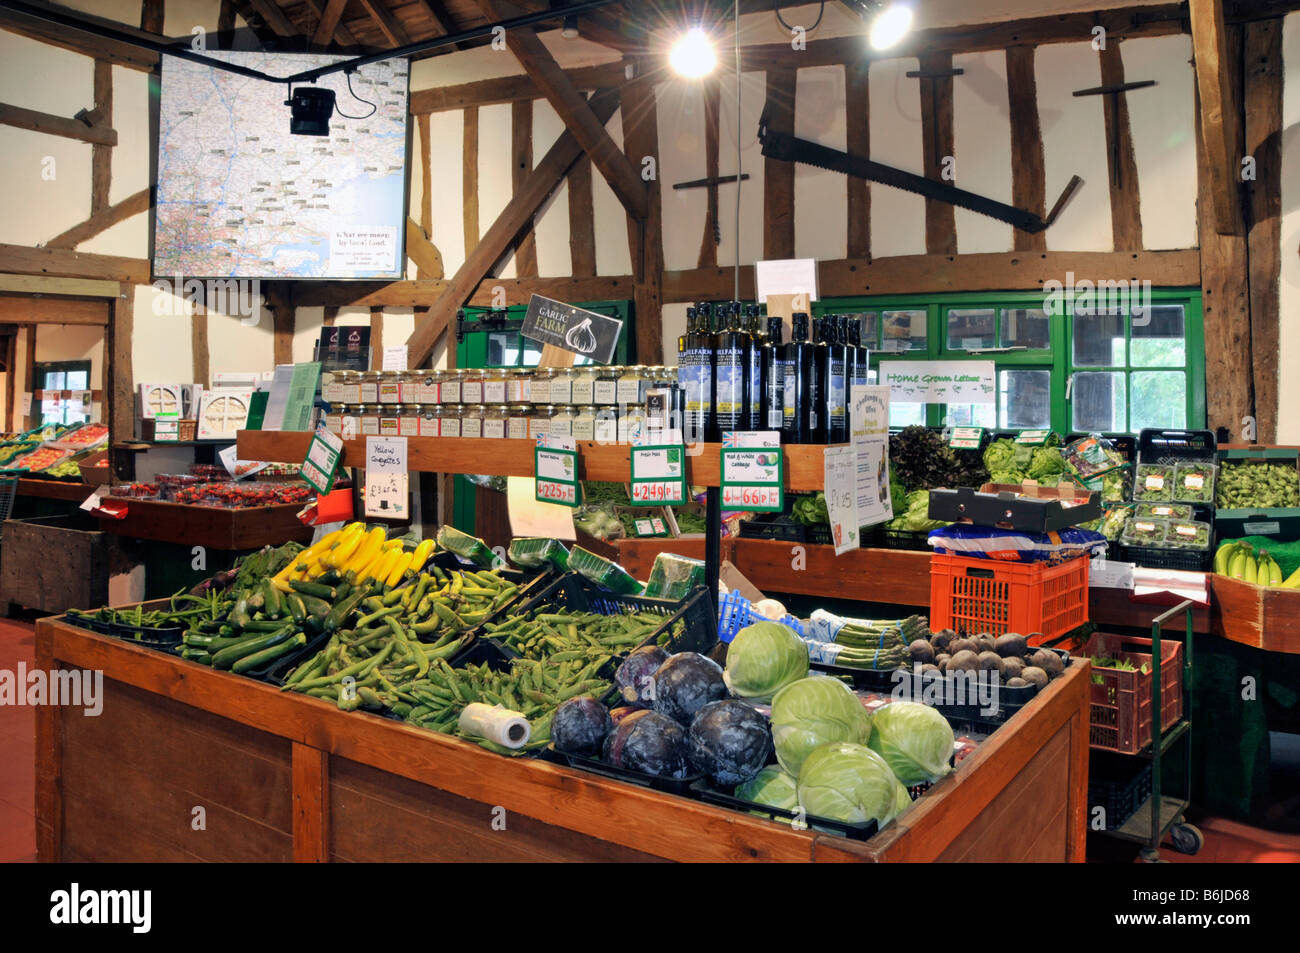 Interior of retail farm shop vegetables and general produce on display - Stock Image